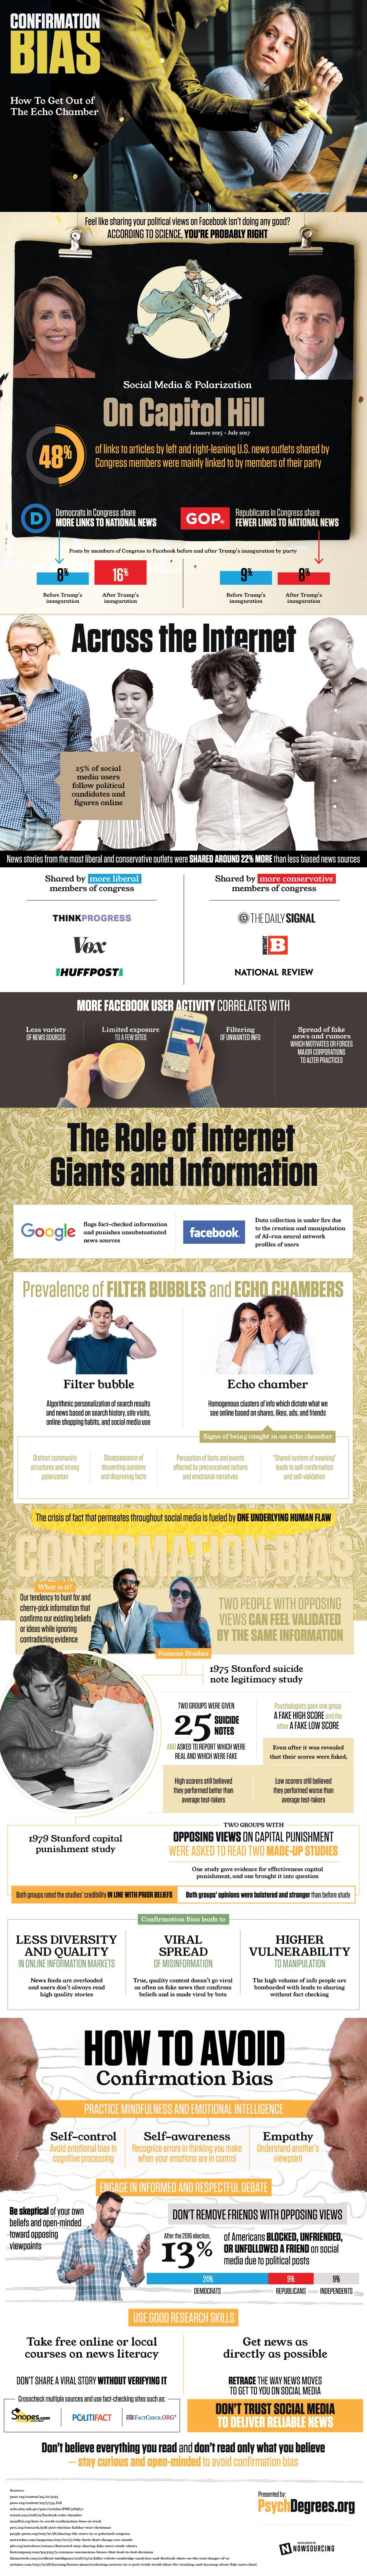 Confirmation Bias: How To Get Out of The Echo Chamber #Infographic